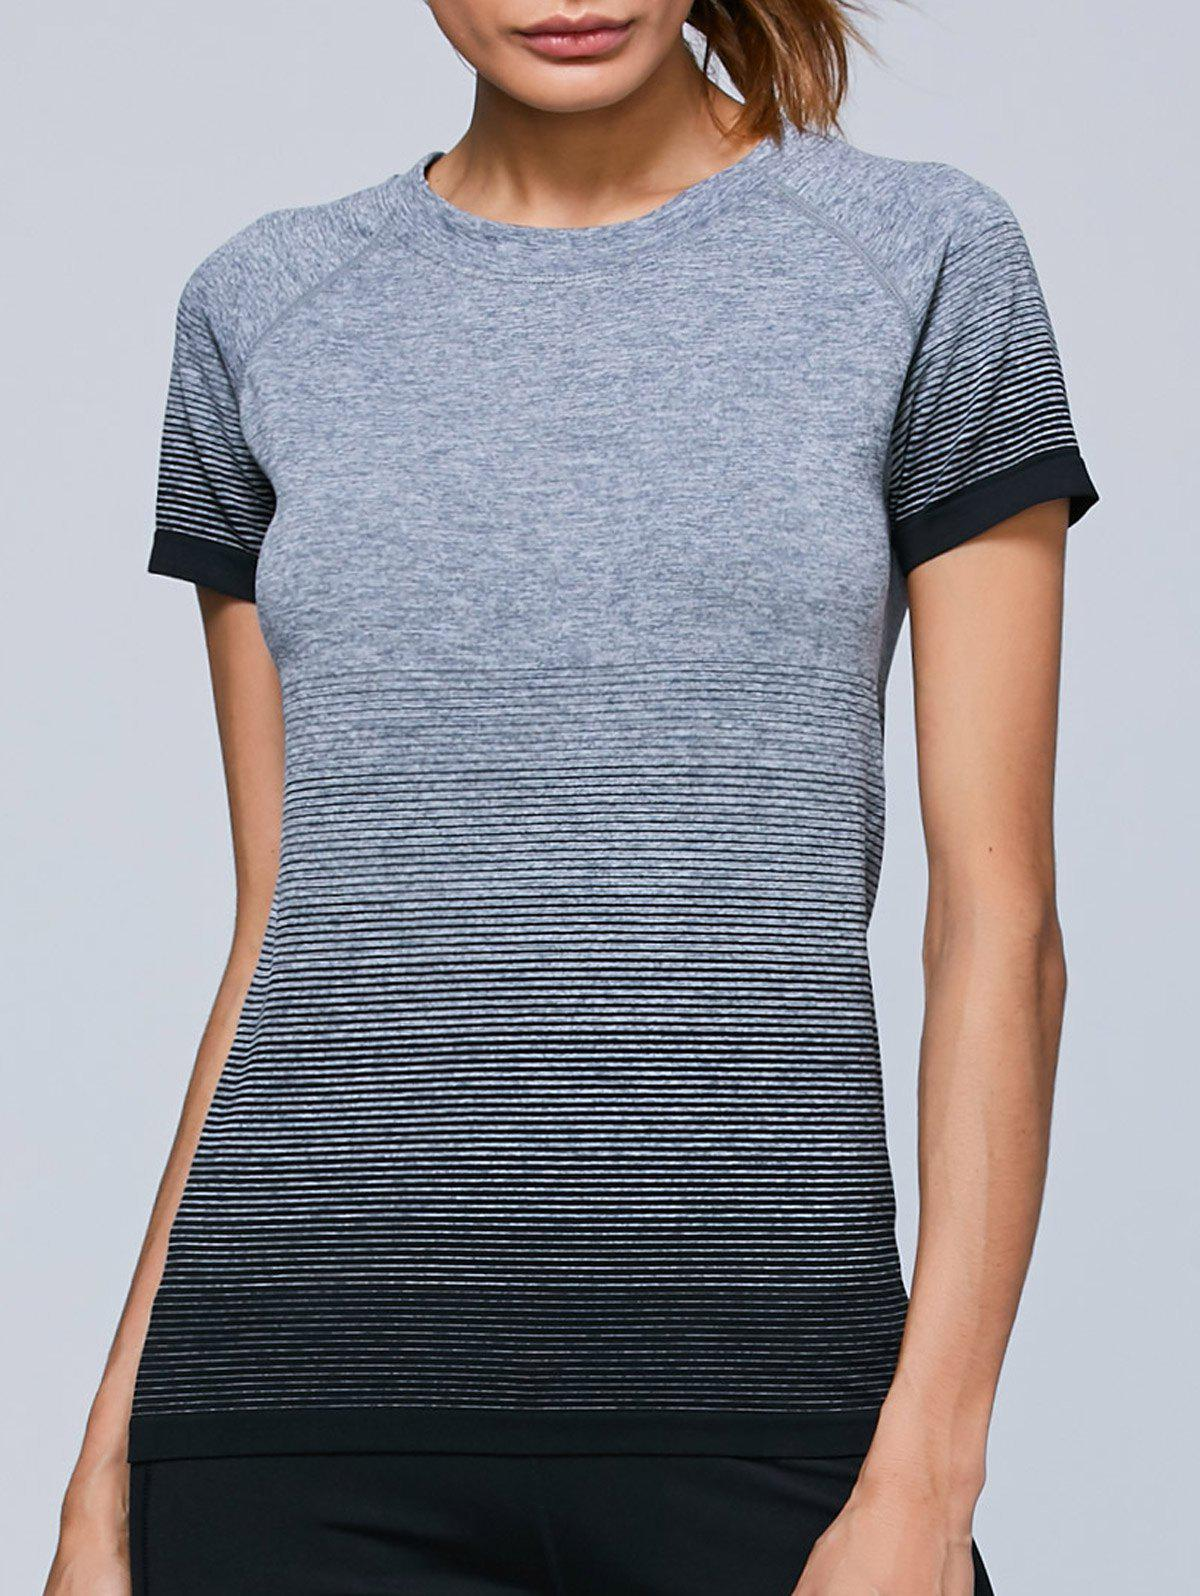 Ombre Raglan Sleeves Sporty T-ShirtWomen<br><br><br>Size: L<br>Color: GRAY